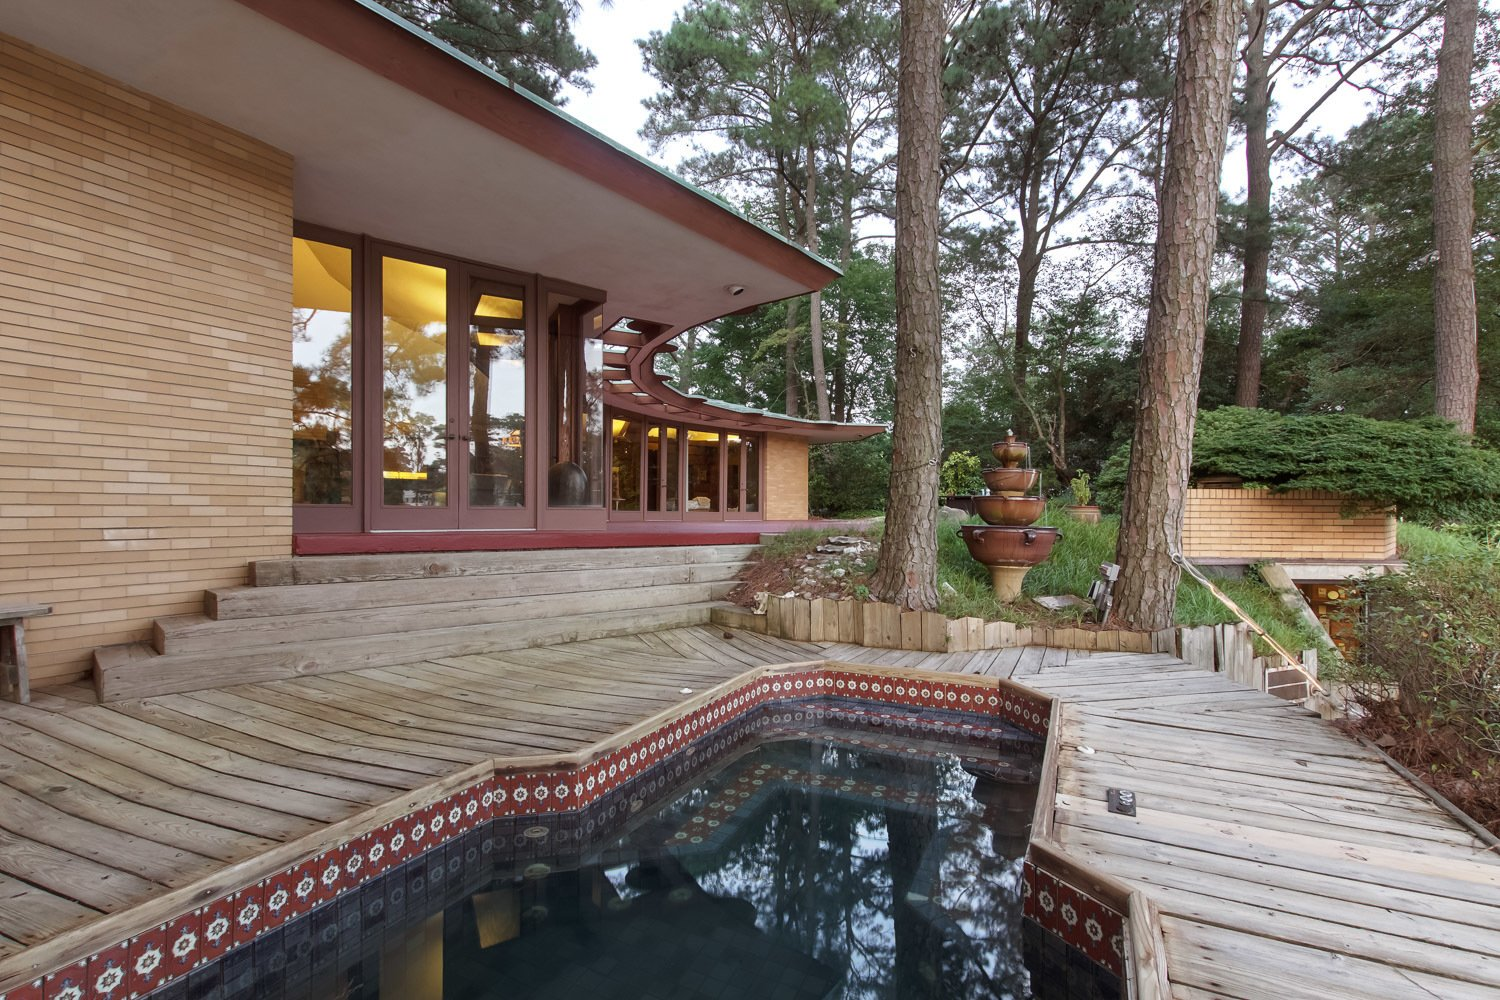 Photo 2 of 7 in You Can Own One of Frank Lloyd Wright's Final Homes for $2.75 Million